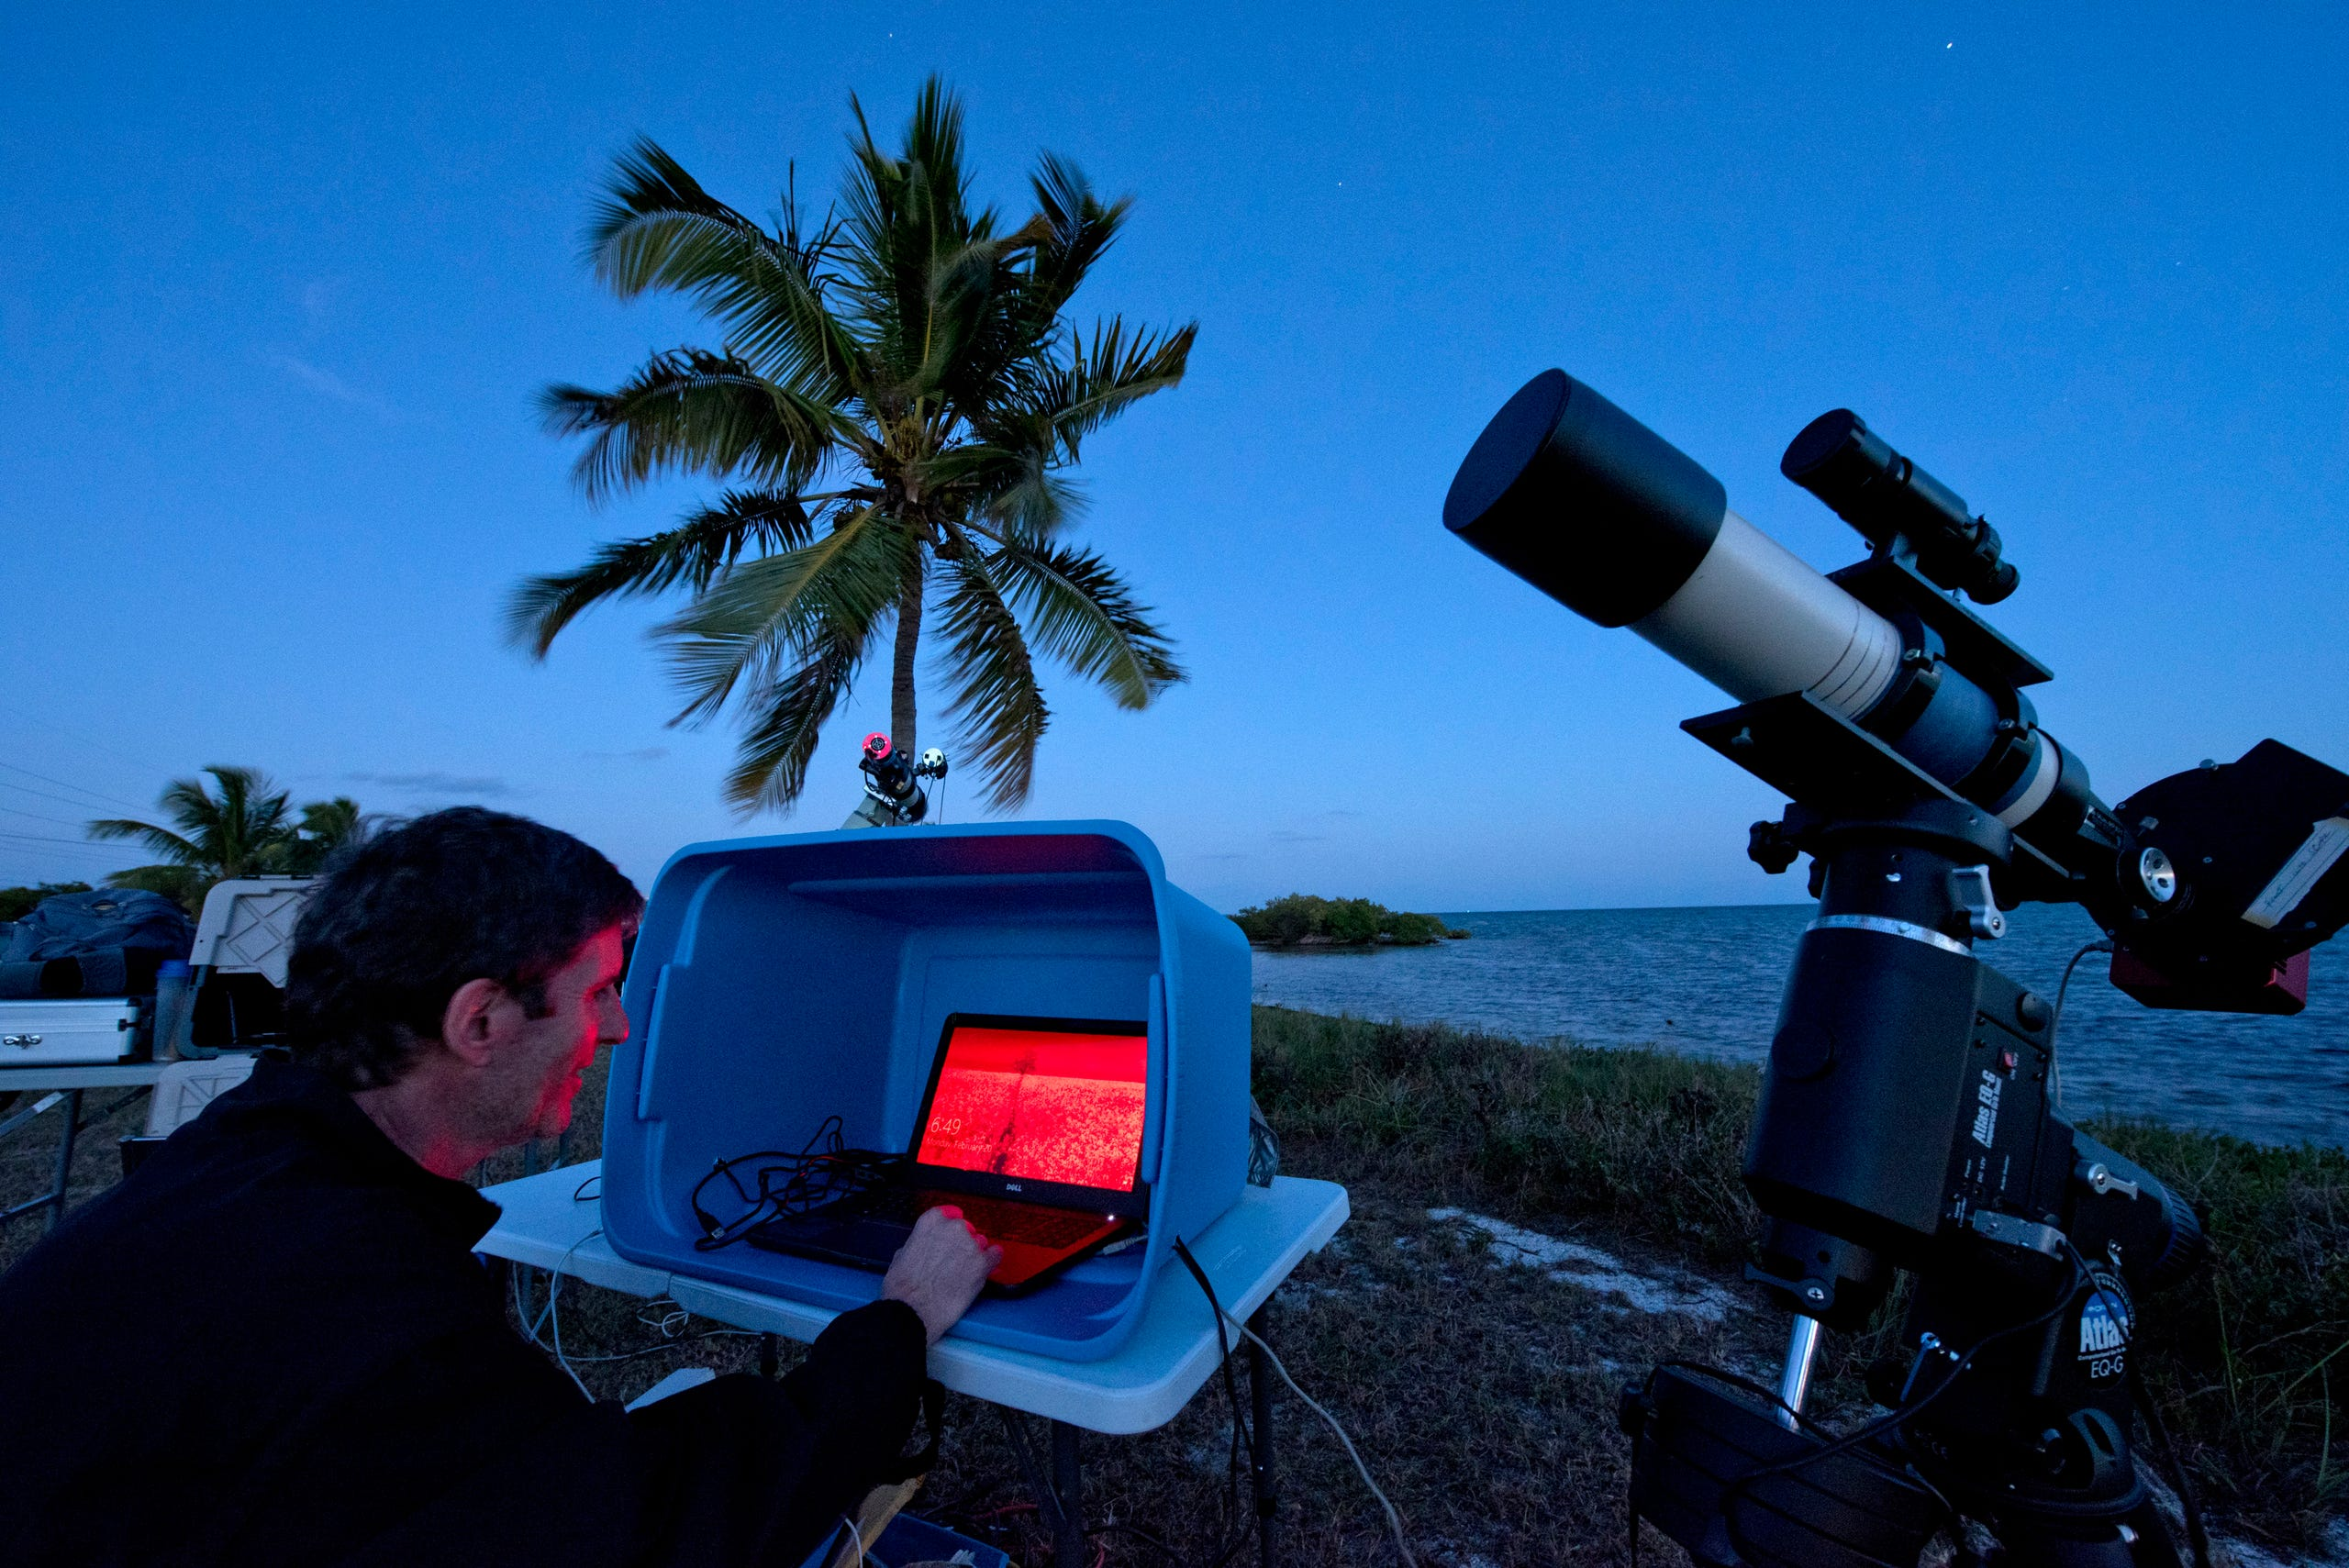 <strong>Florida Keys: </strong>The Florida Keys can offer stargazing above the palm trees. Marciano suggests finding a spot in the Lower Keys, far away from the neon lights of the Miami area.